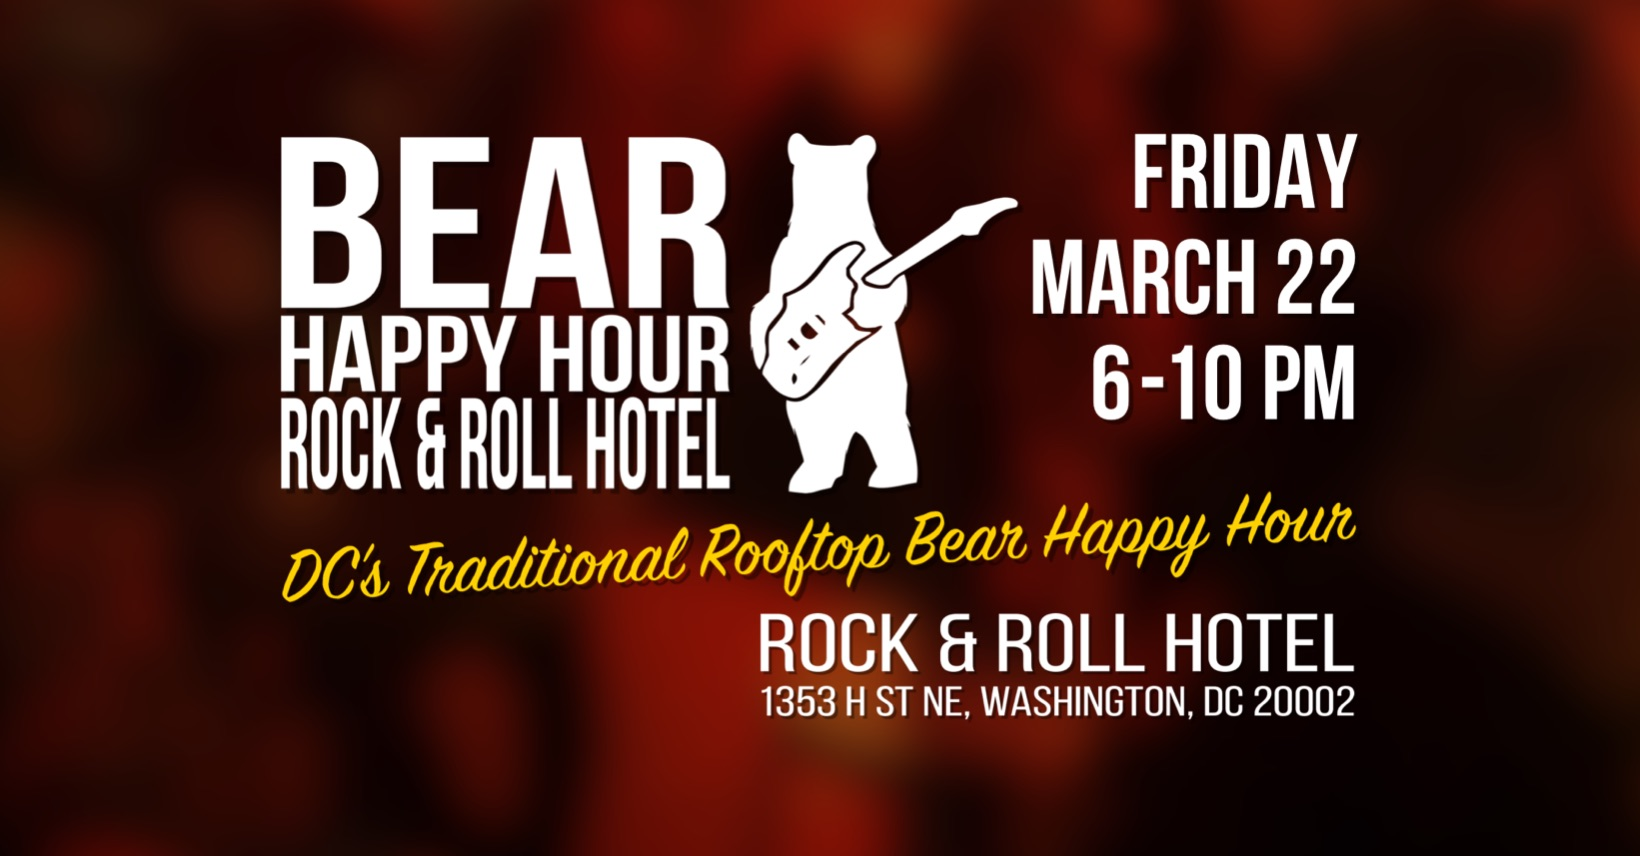 Bear Happy Hour at Rock & Roll Hotel March 22 2019